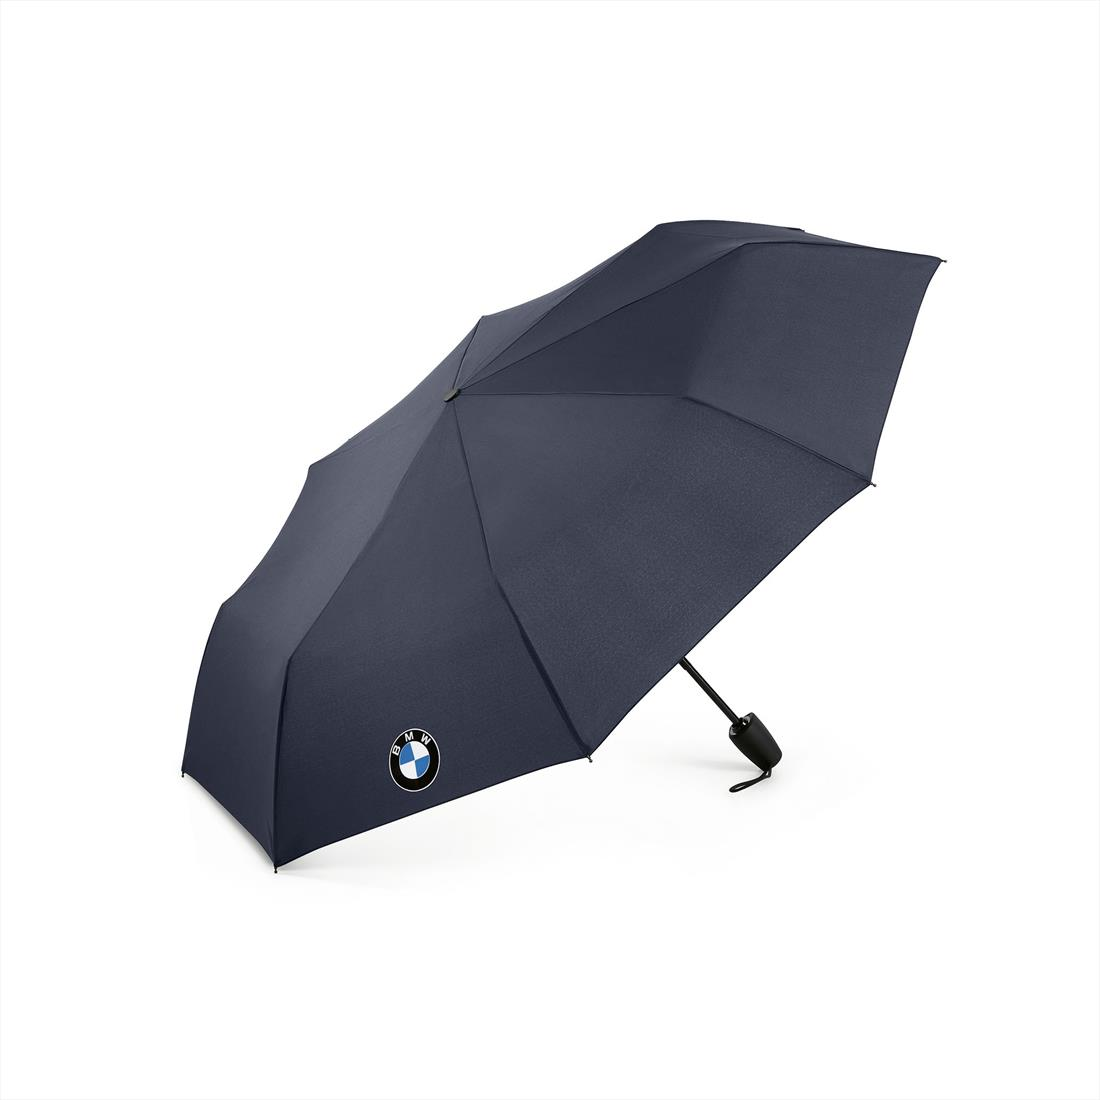 BMW LOGO POCKET UMBRELLA